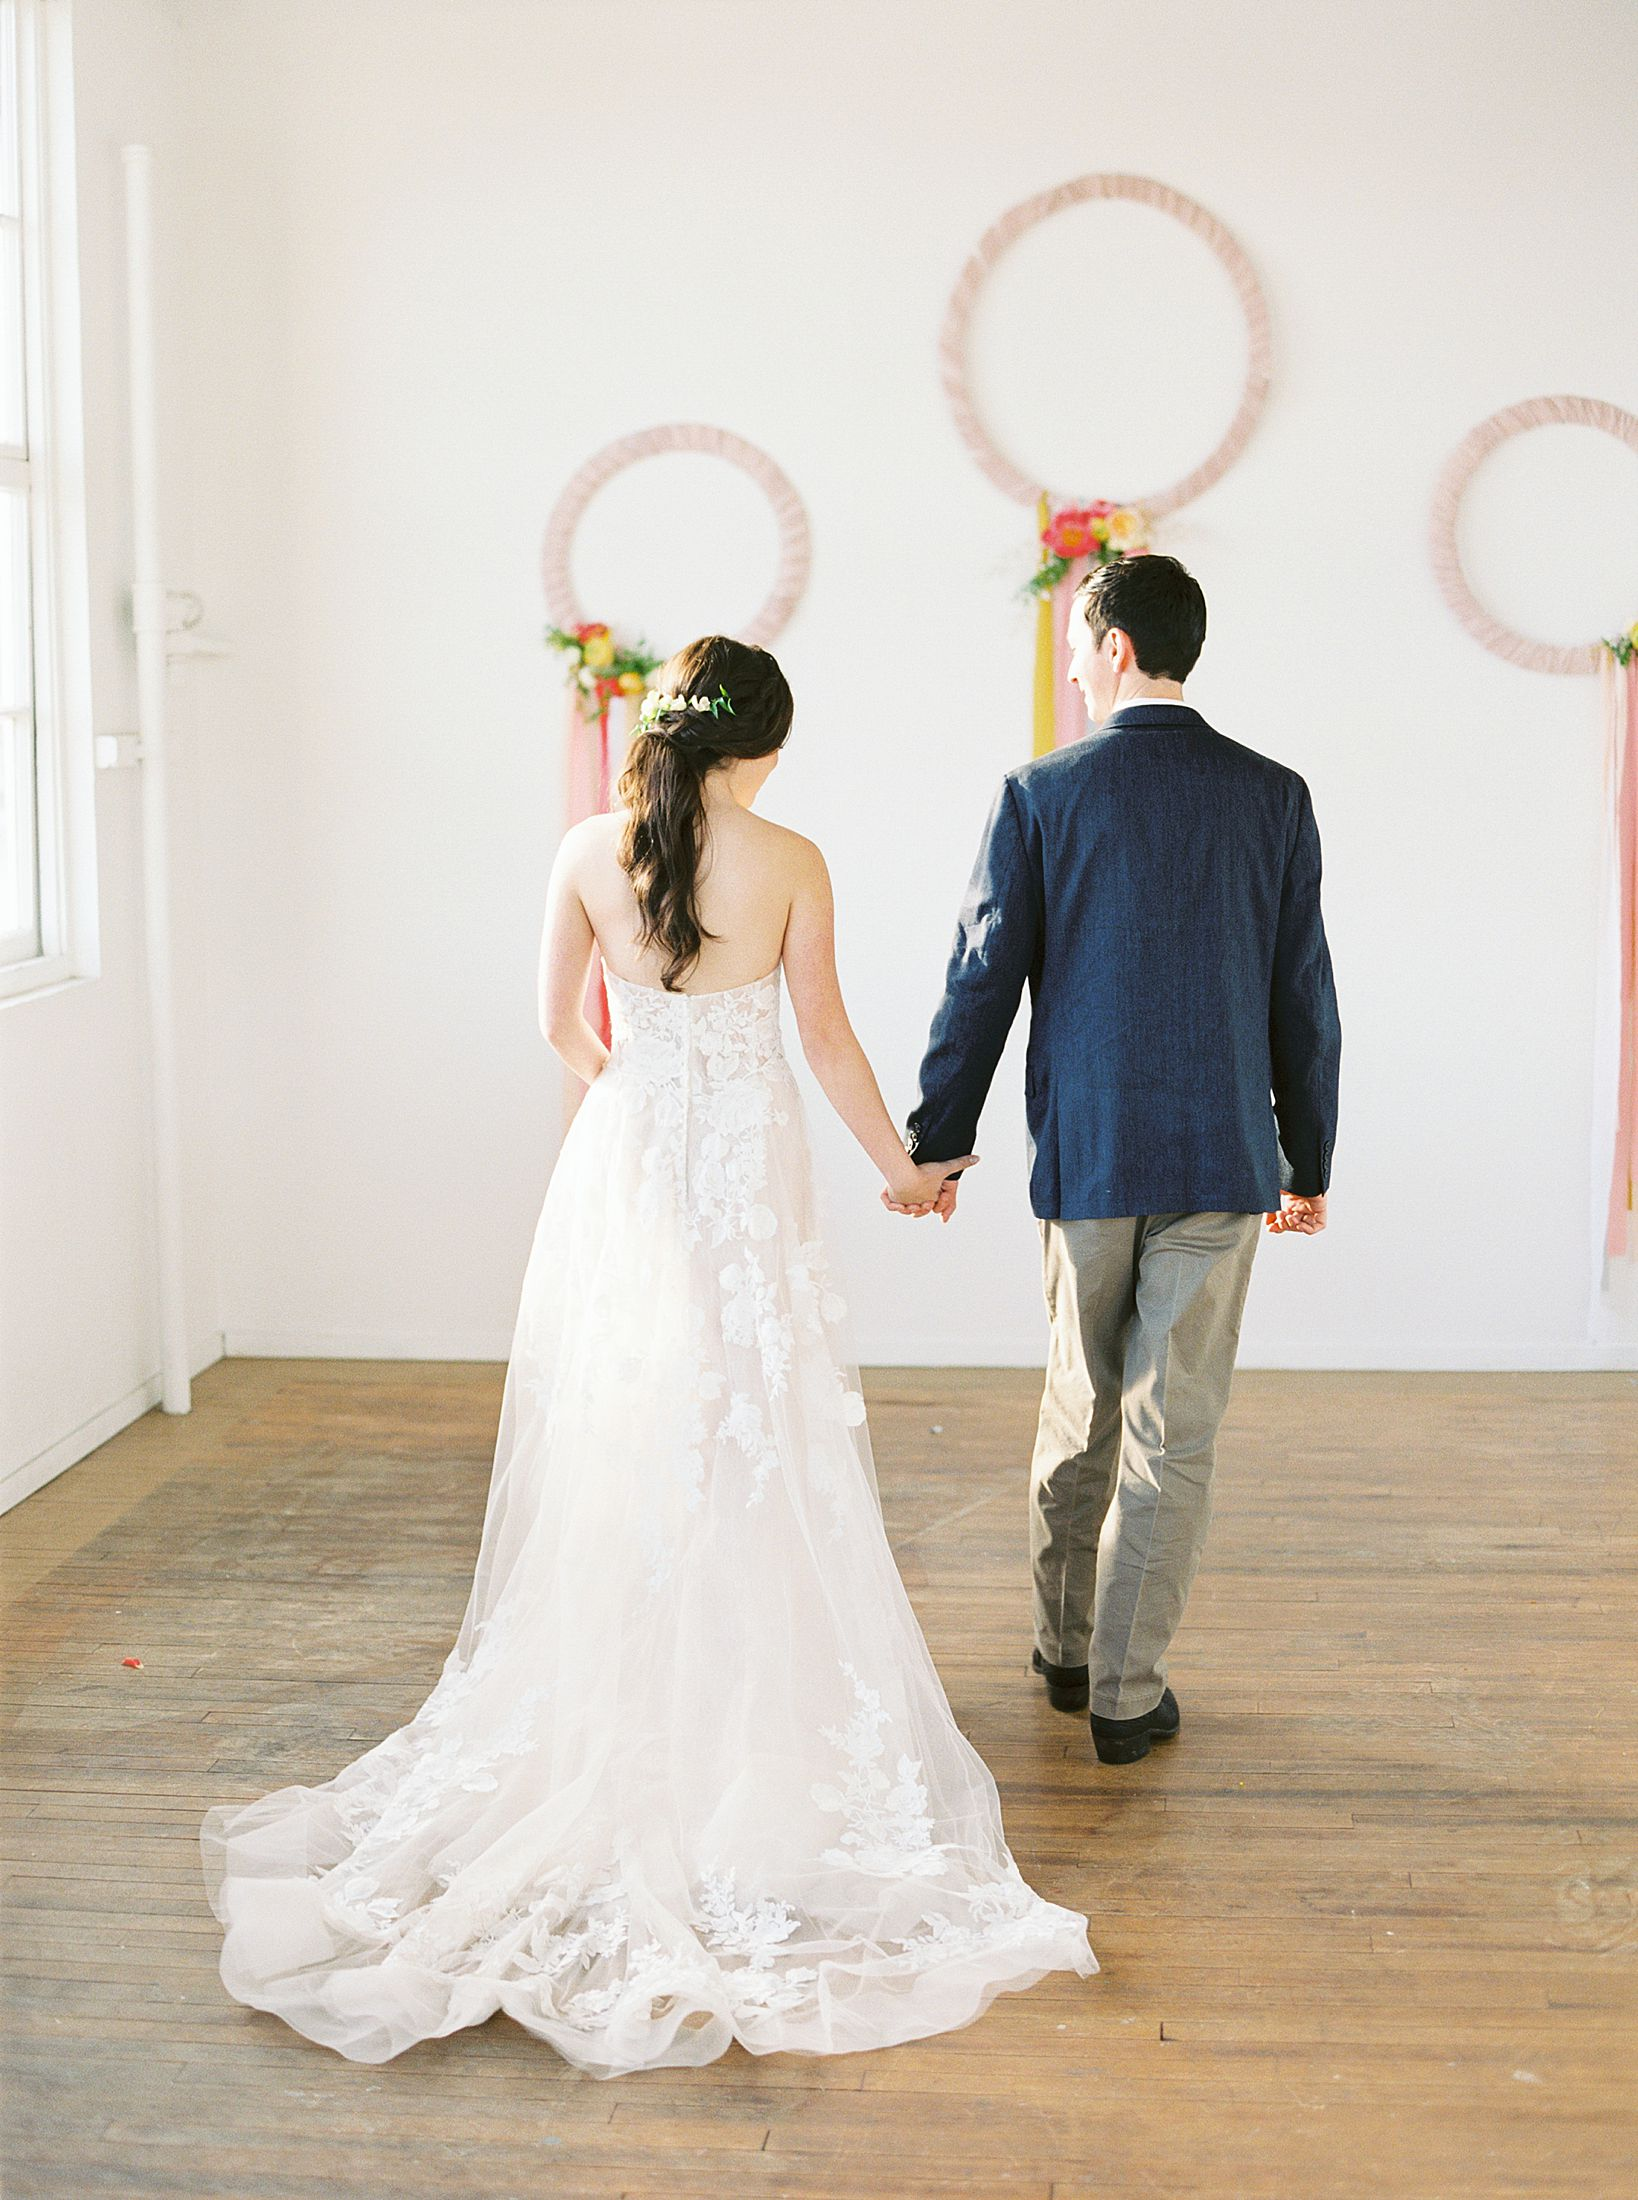 Bay Area Spring Wedding Inspiration - Ashley Baumgartner - Inspired By This - Party Crush Studio and Lens of Lenox Videography - Bay Area Wedding Photography_0072.jpg